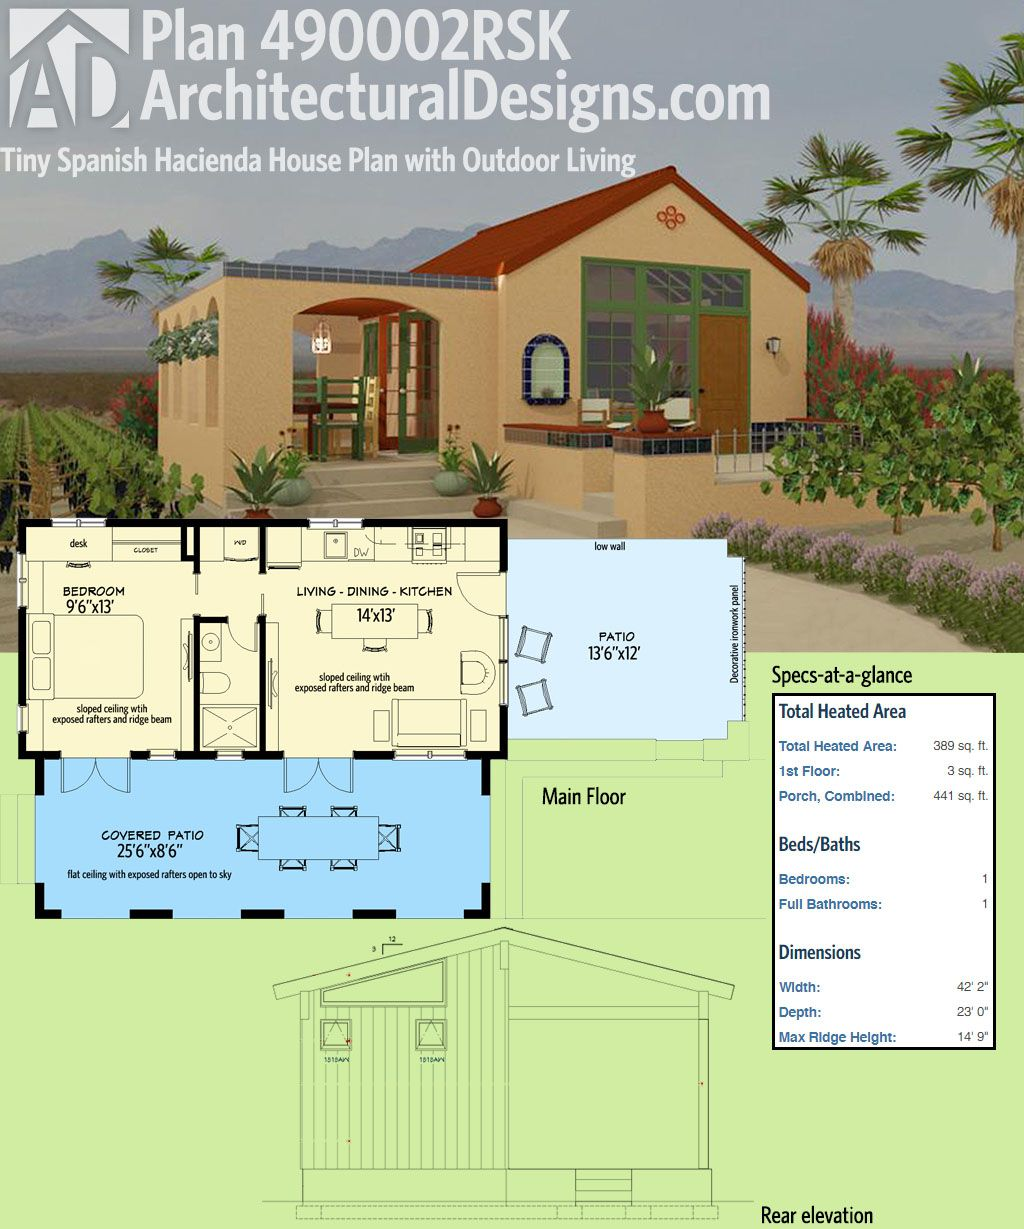 architectural designs tiny house plan 490002rsk is modeled on best tiny house plan design ideas id=79182